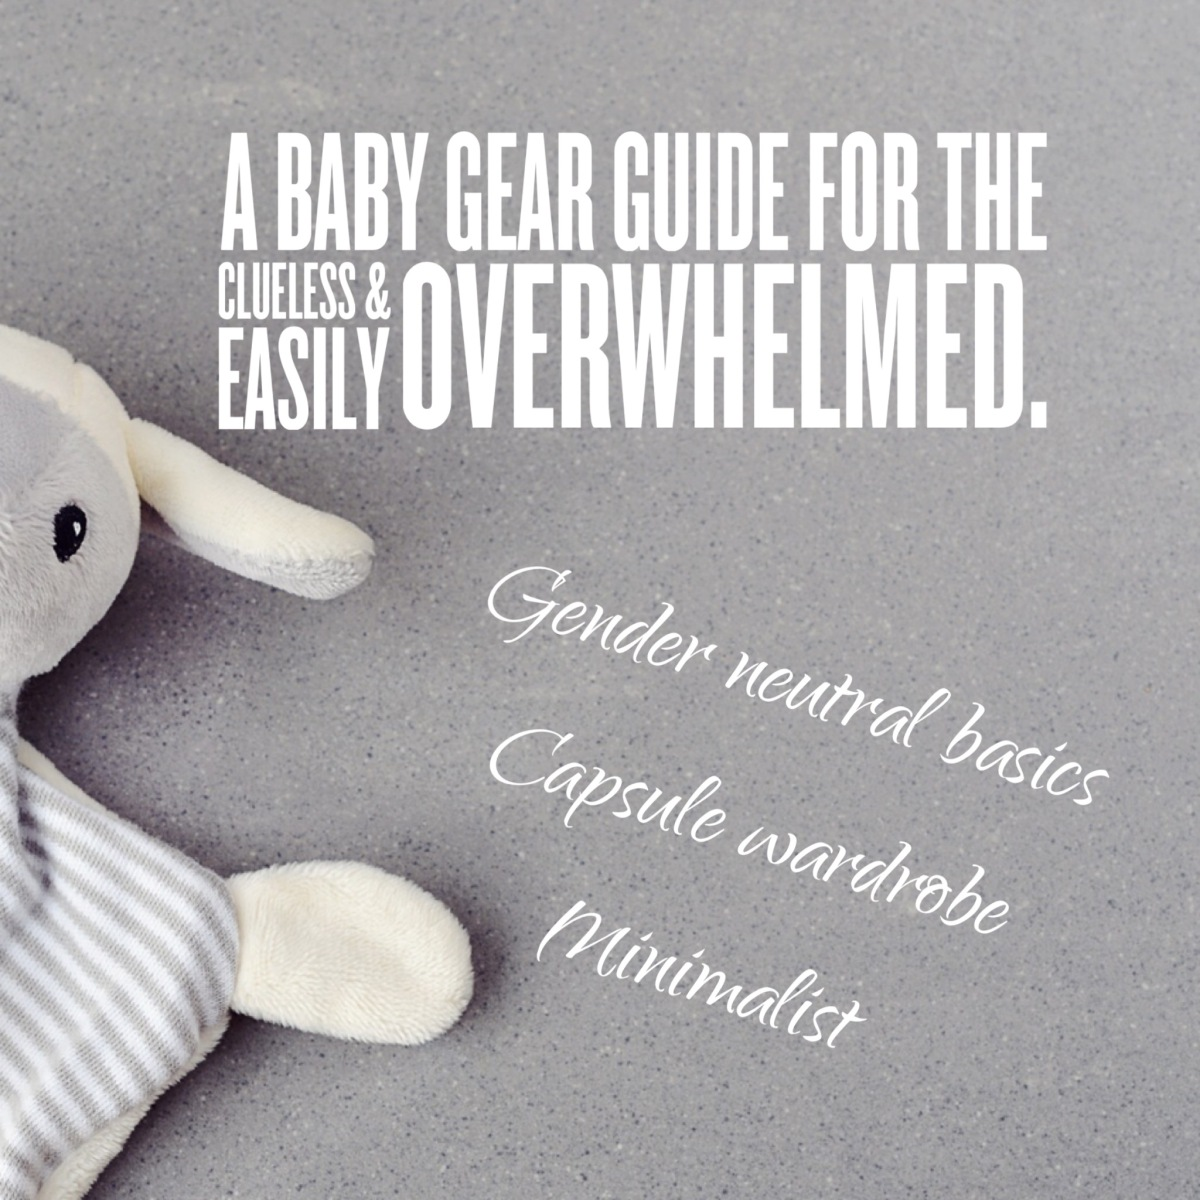 The Basic Gear You Will Need for Your Baby (A Somewhat Minimalist and Gender NeutralList)